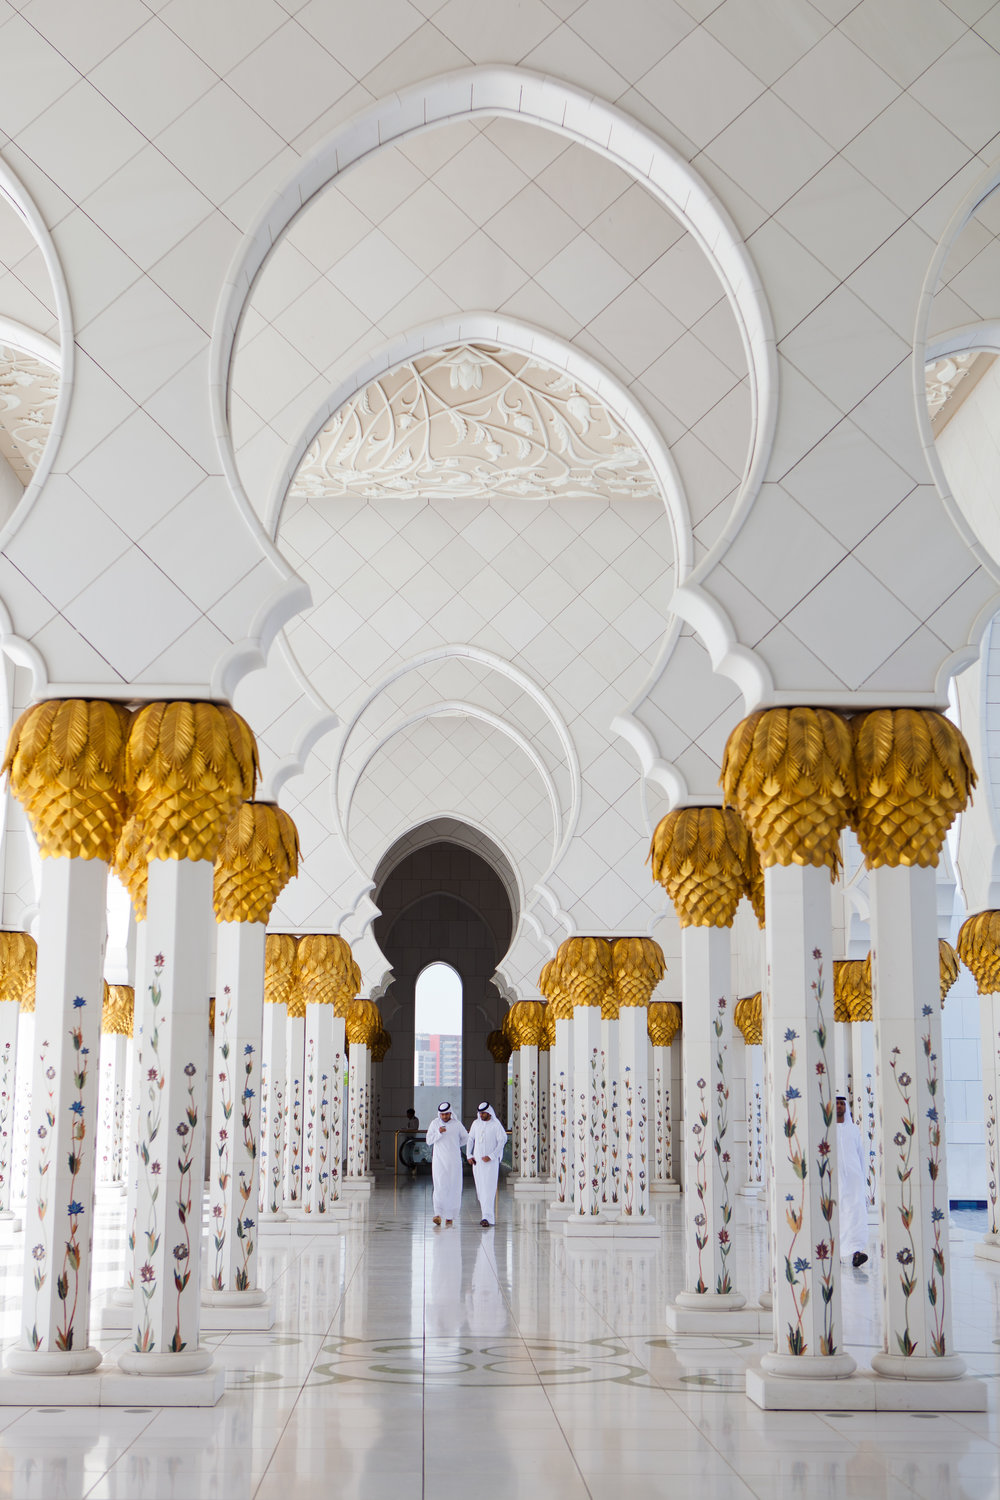 Had I not looked behind me while shooting the main portion of the Sheikh Zayed Grand Mosque in Abu Dhabi, I would have missed this moment between two local men.